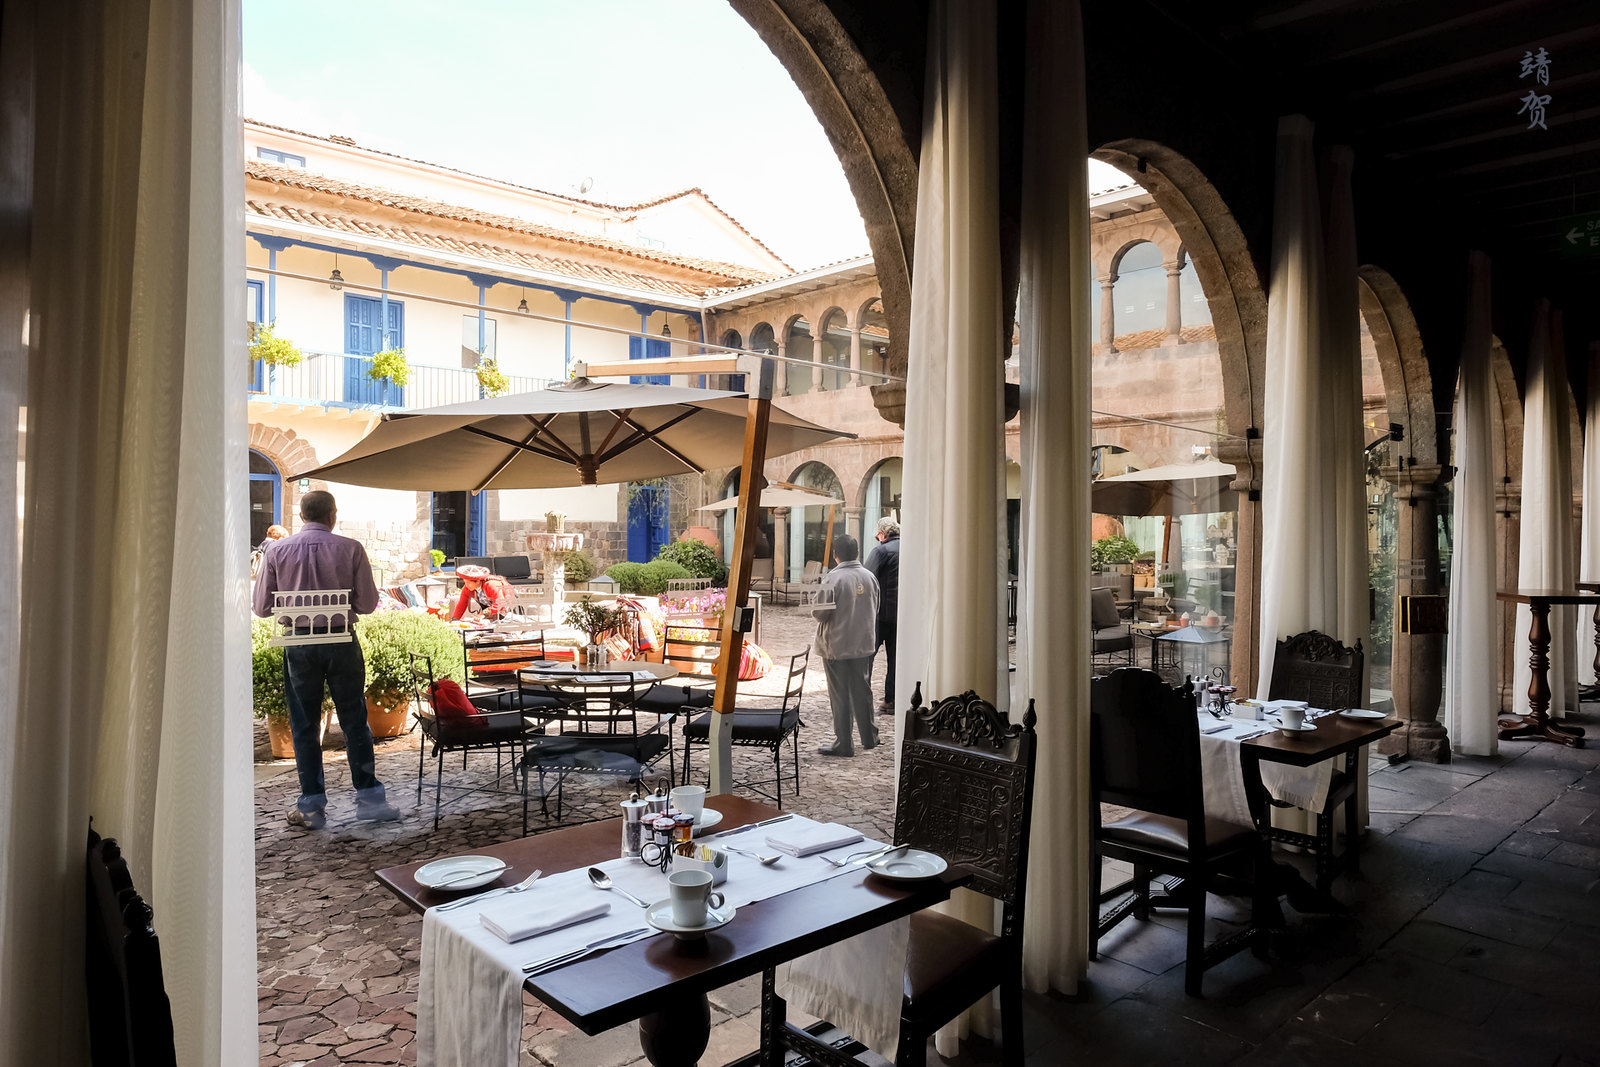 Restaurant by the courtyard